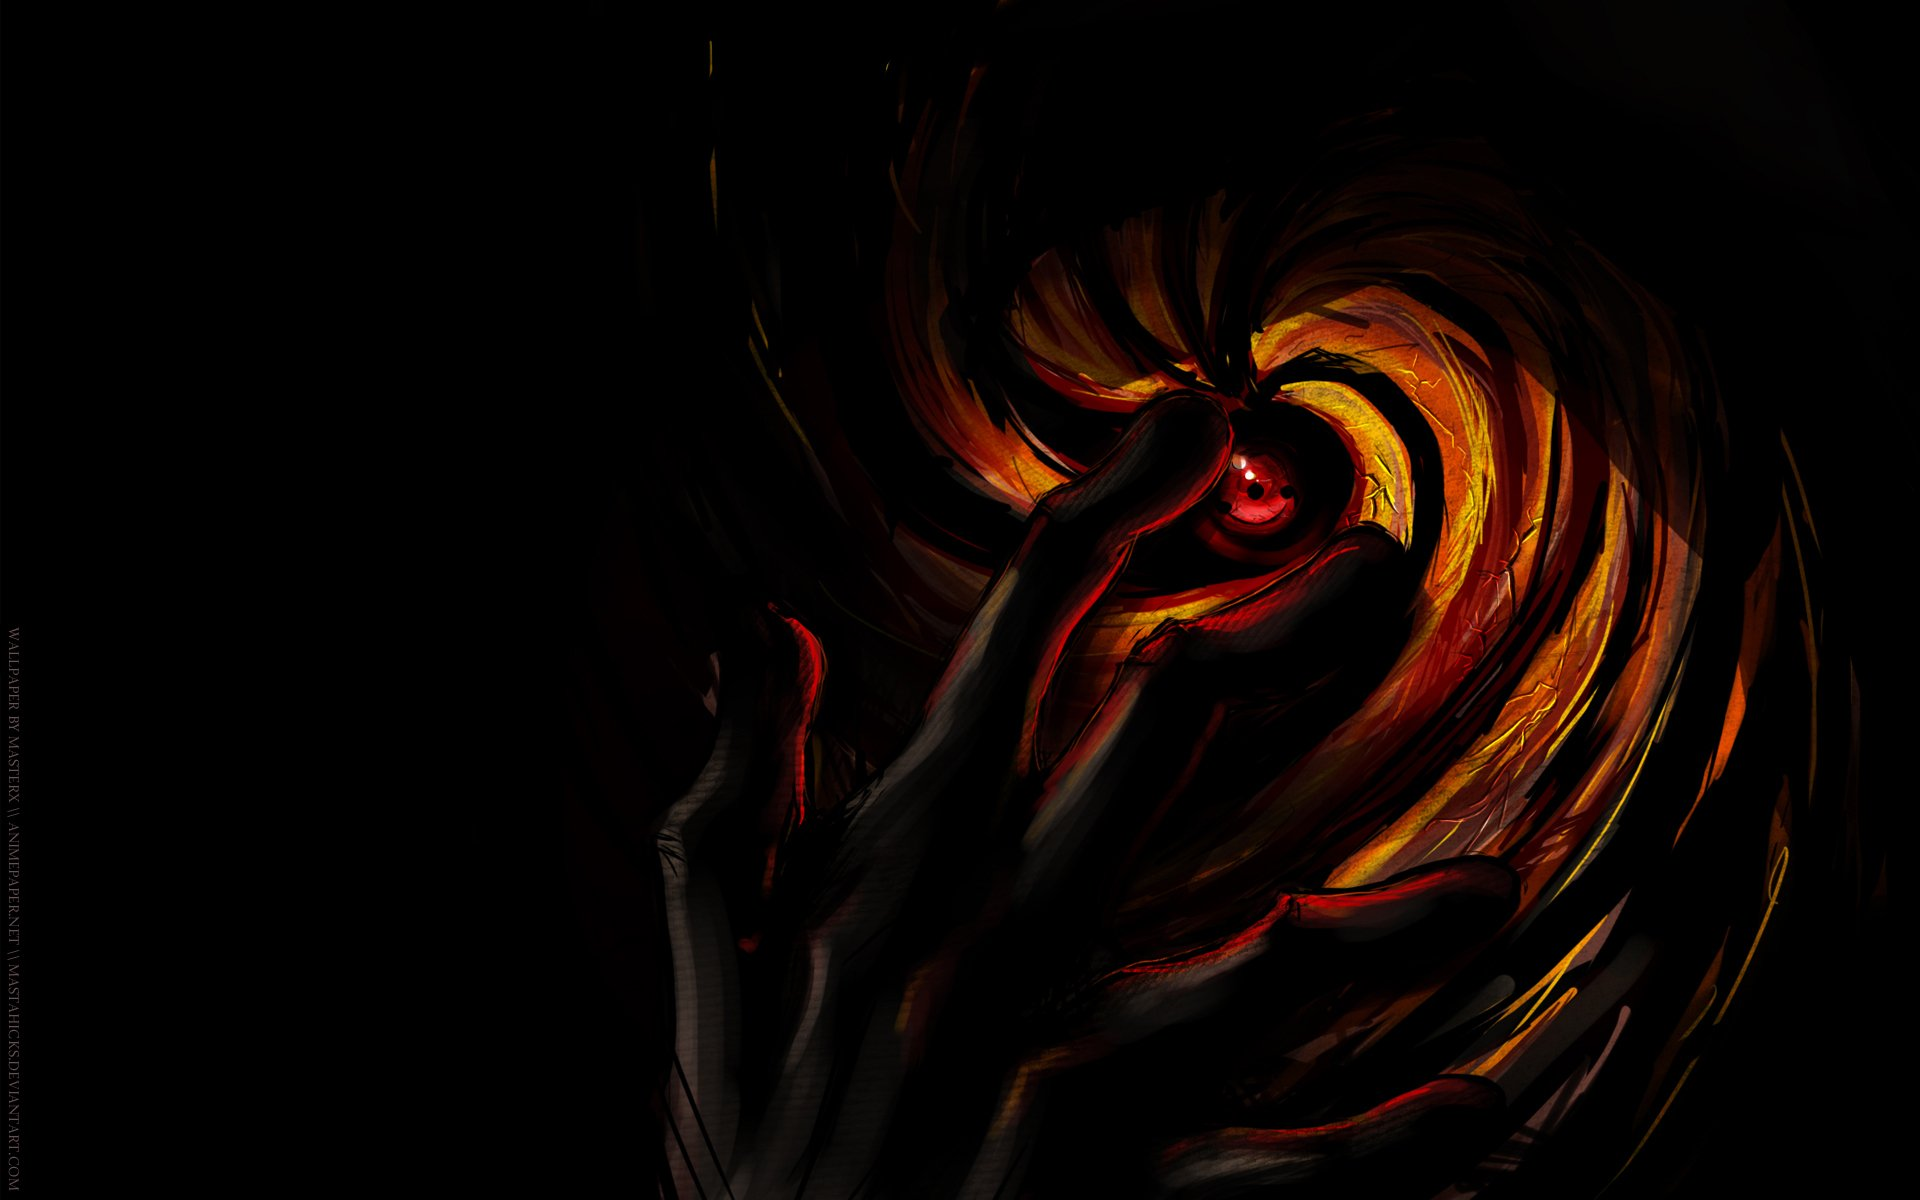 308 Obito Uchiha HD Wallpapers Background Images 1920x1200